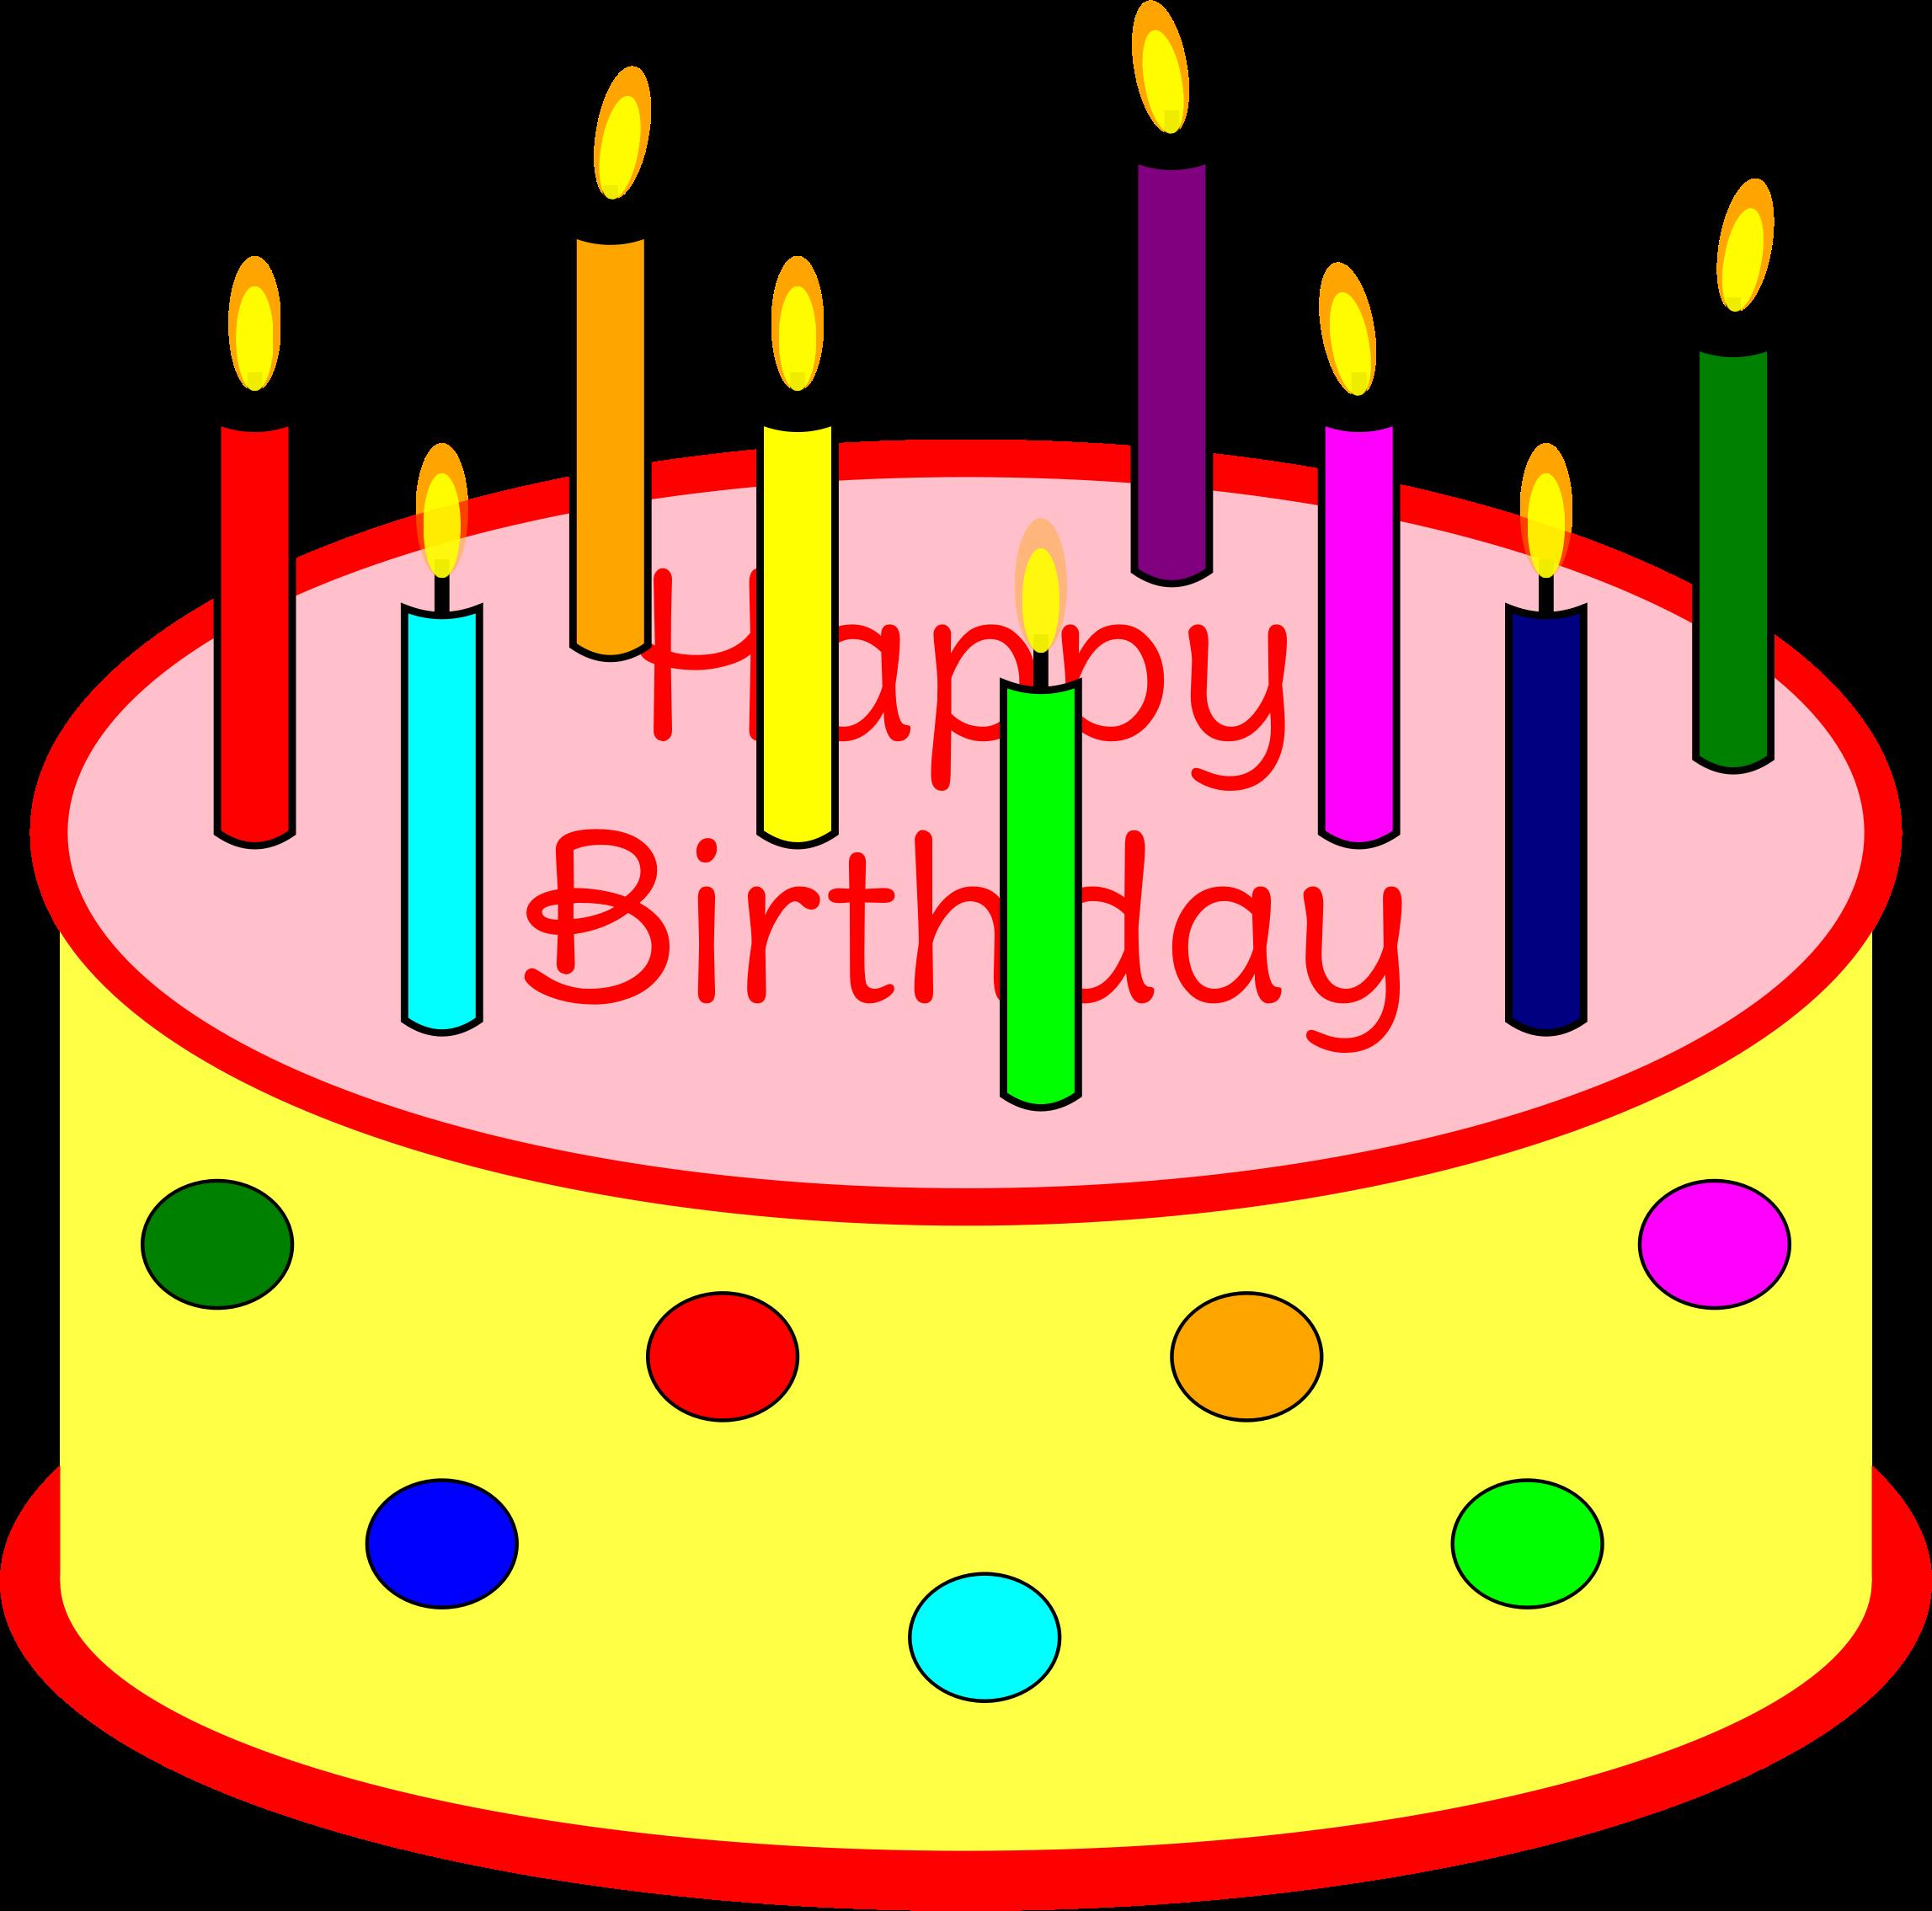 birthday cake with candles clipart ; bdaycake